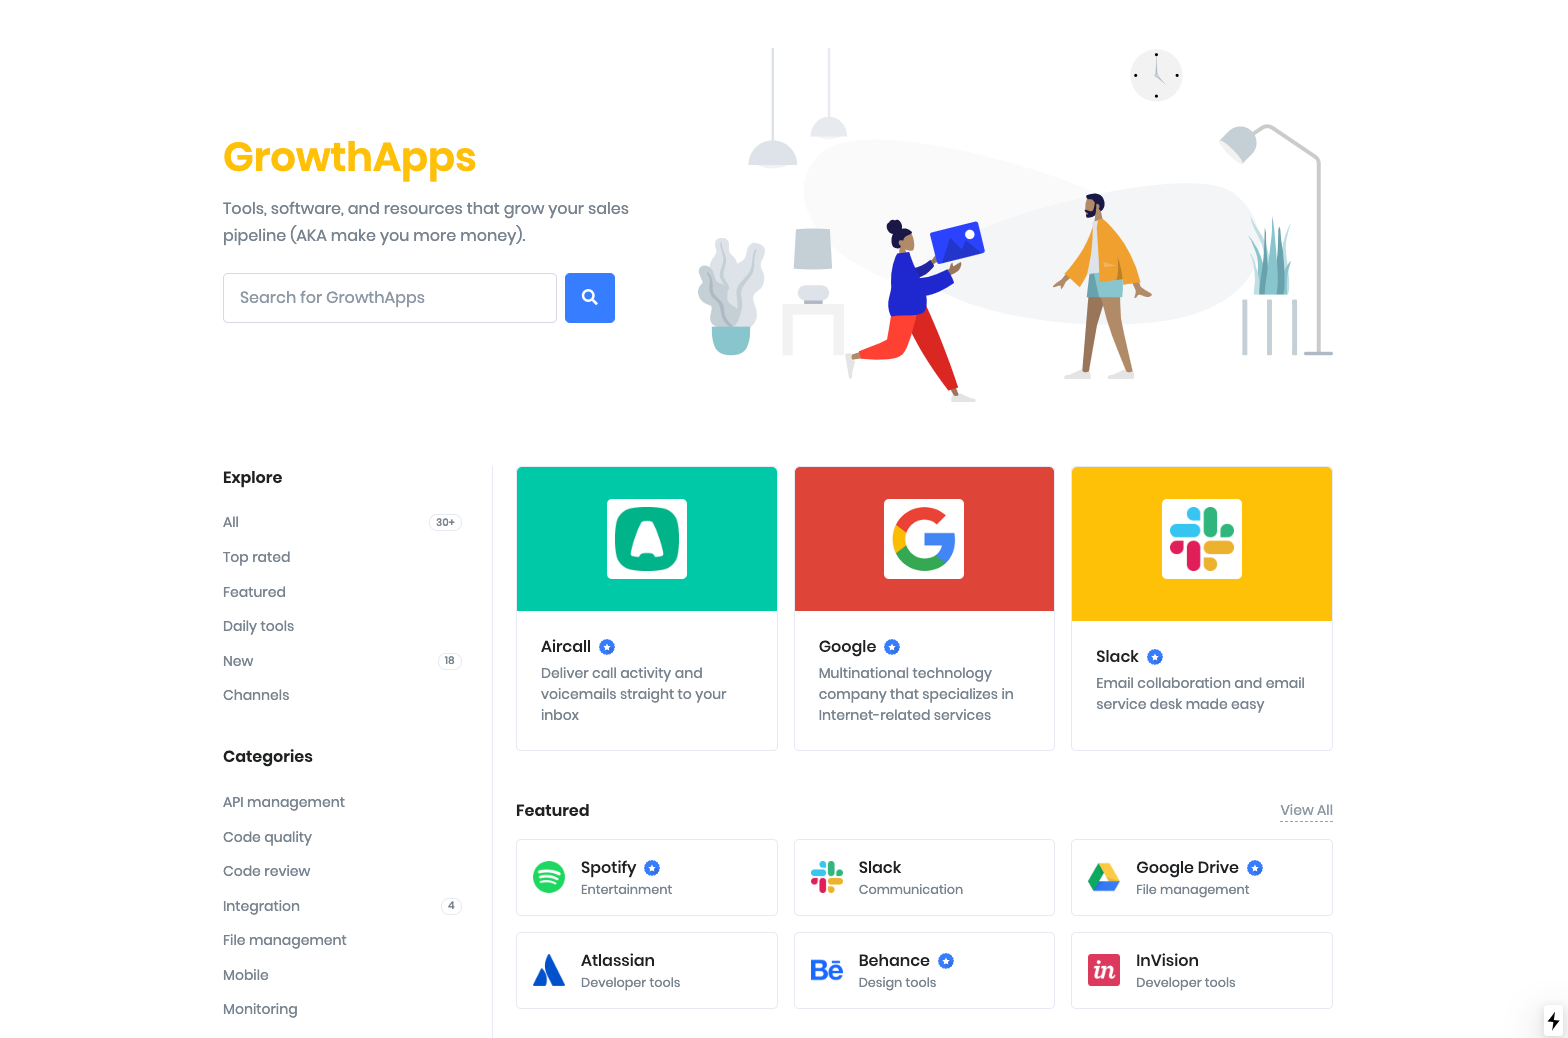 Growth Apps